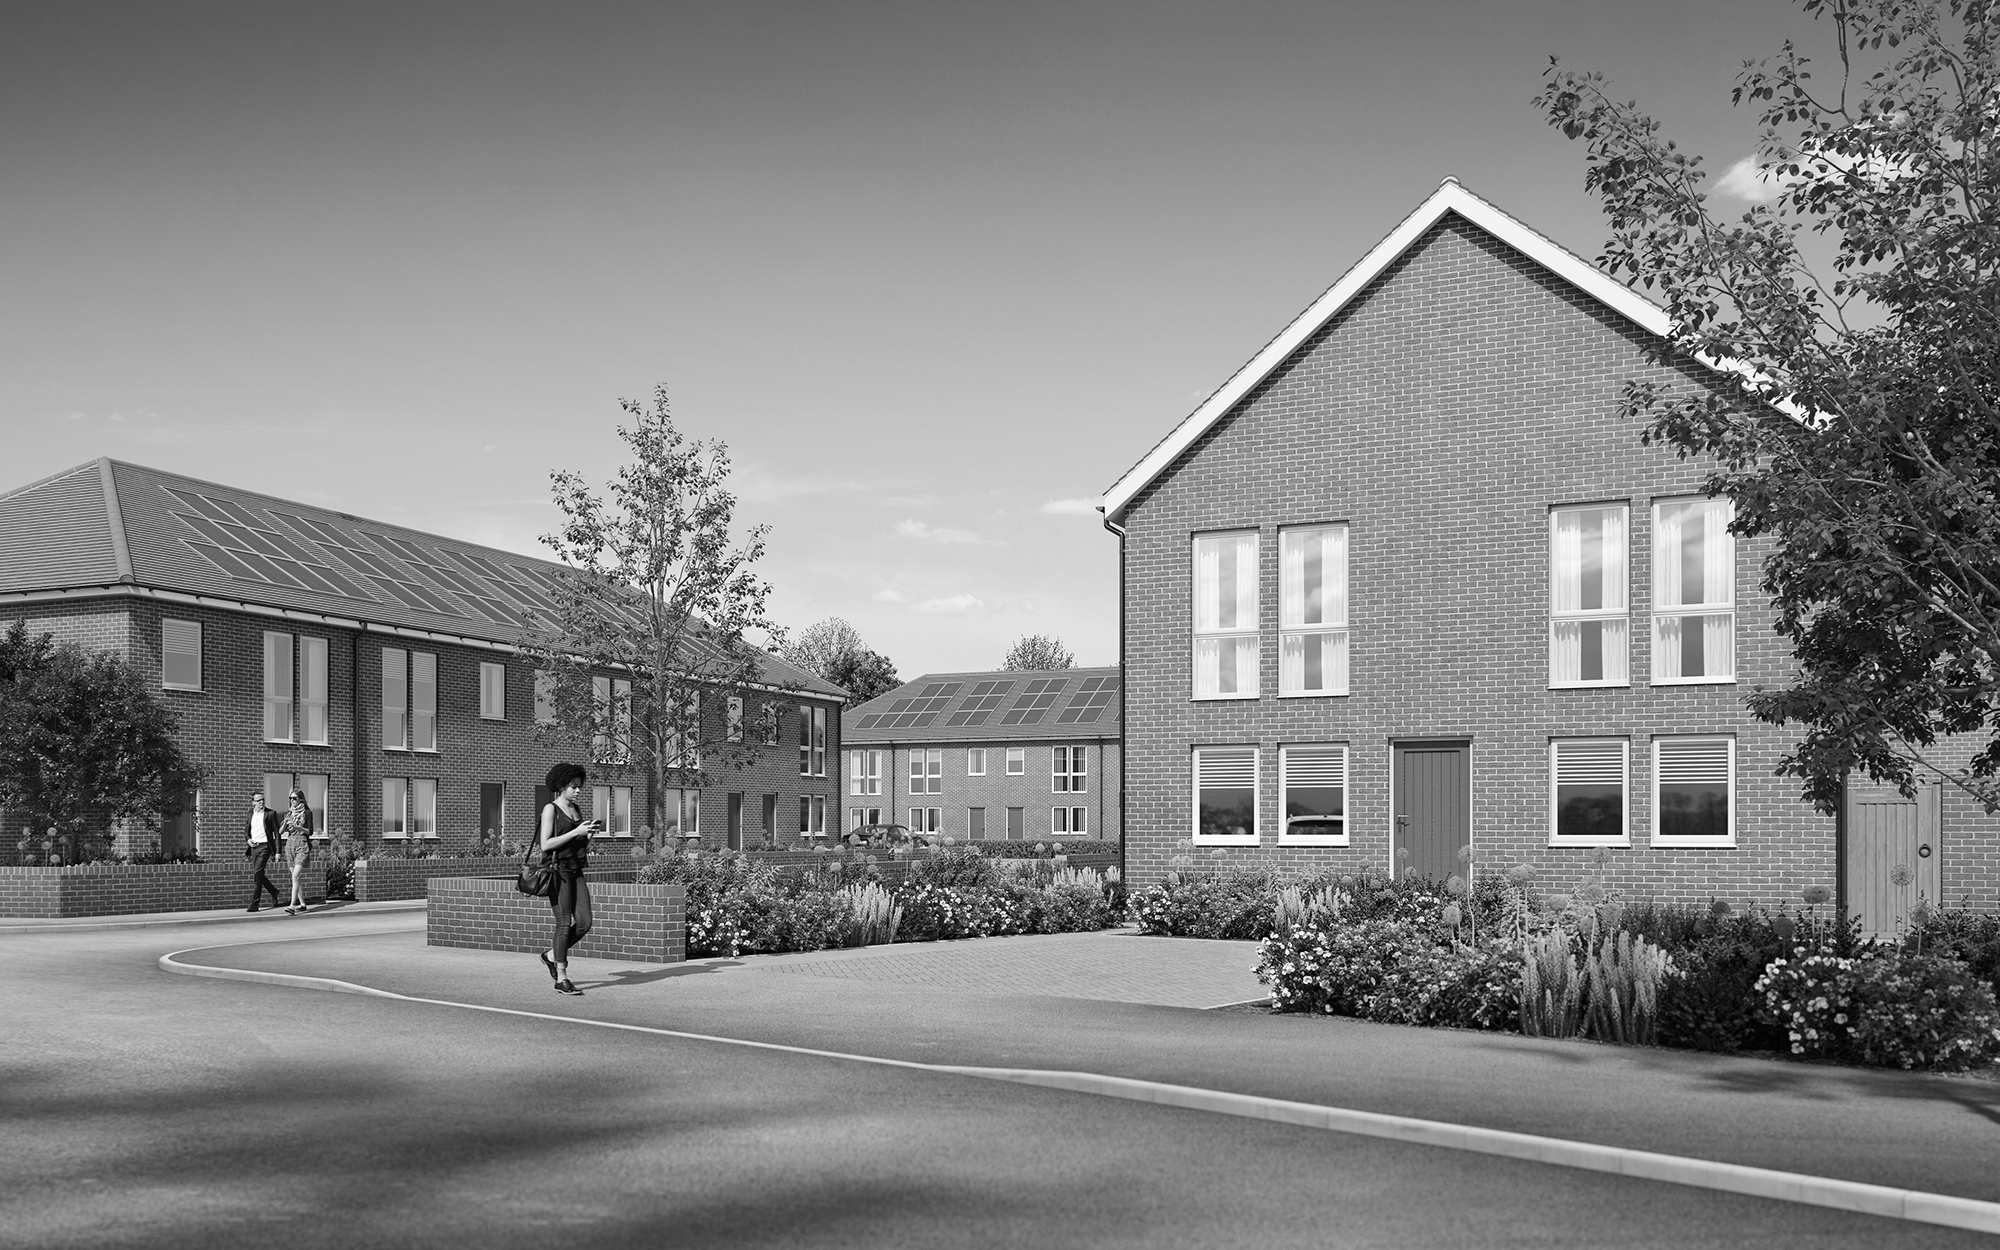 Octevo Housing Solution and Liverpool Community Homes